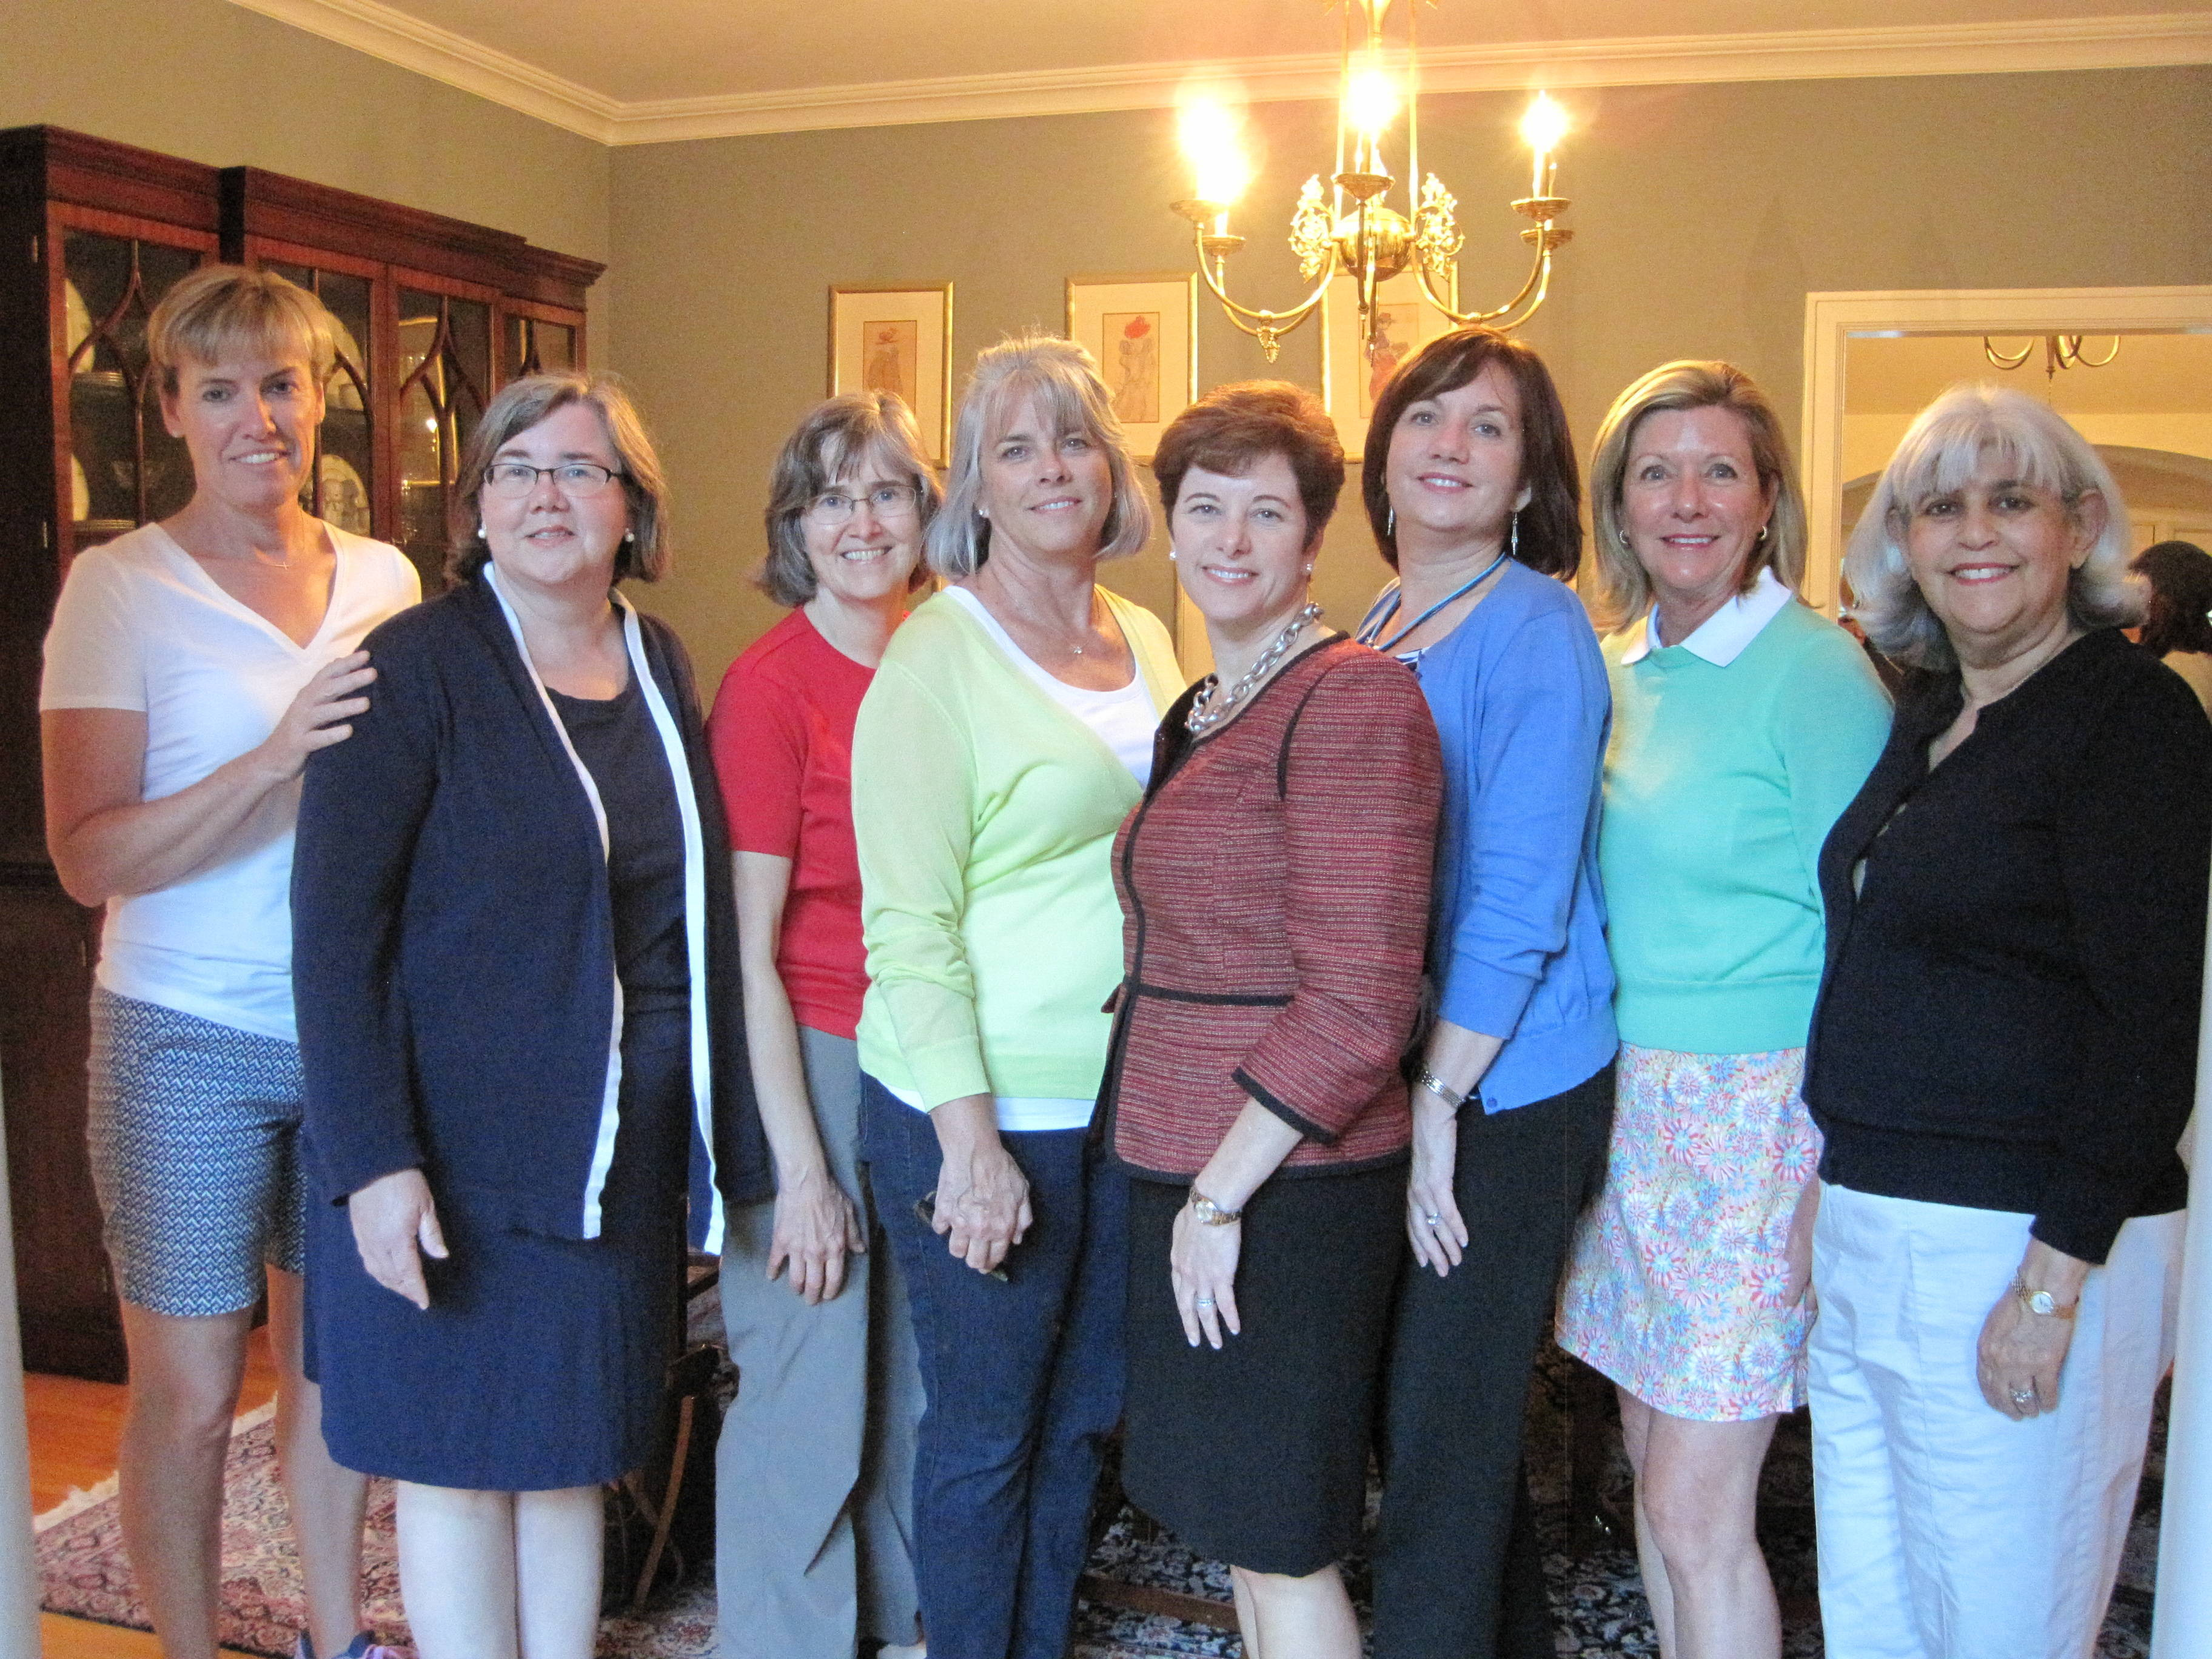 College Woman\'s Club Invites Area Women to Fall Social - Westfield ...